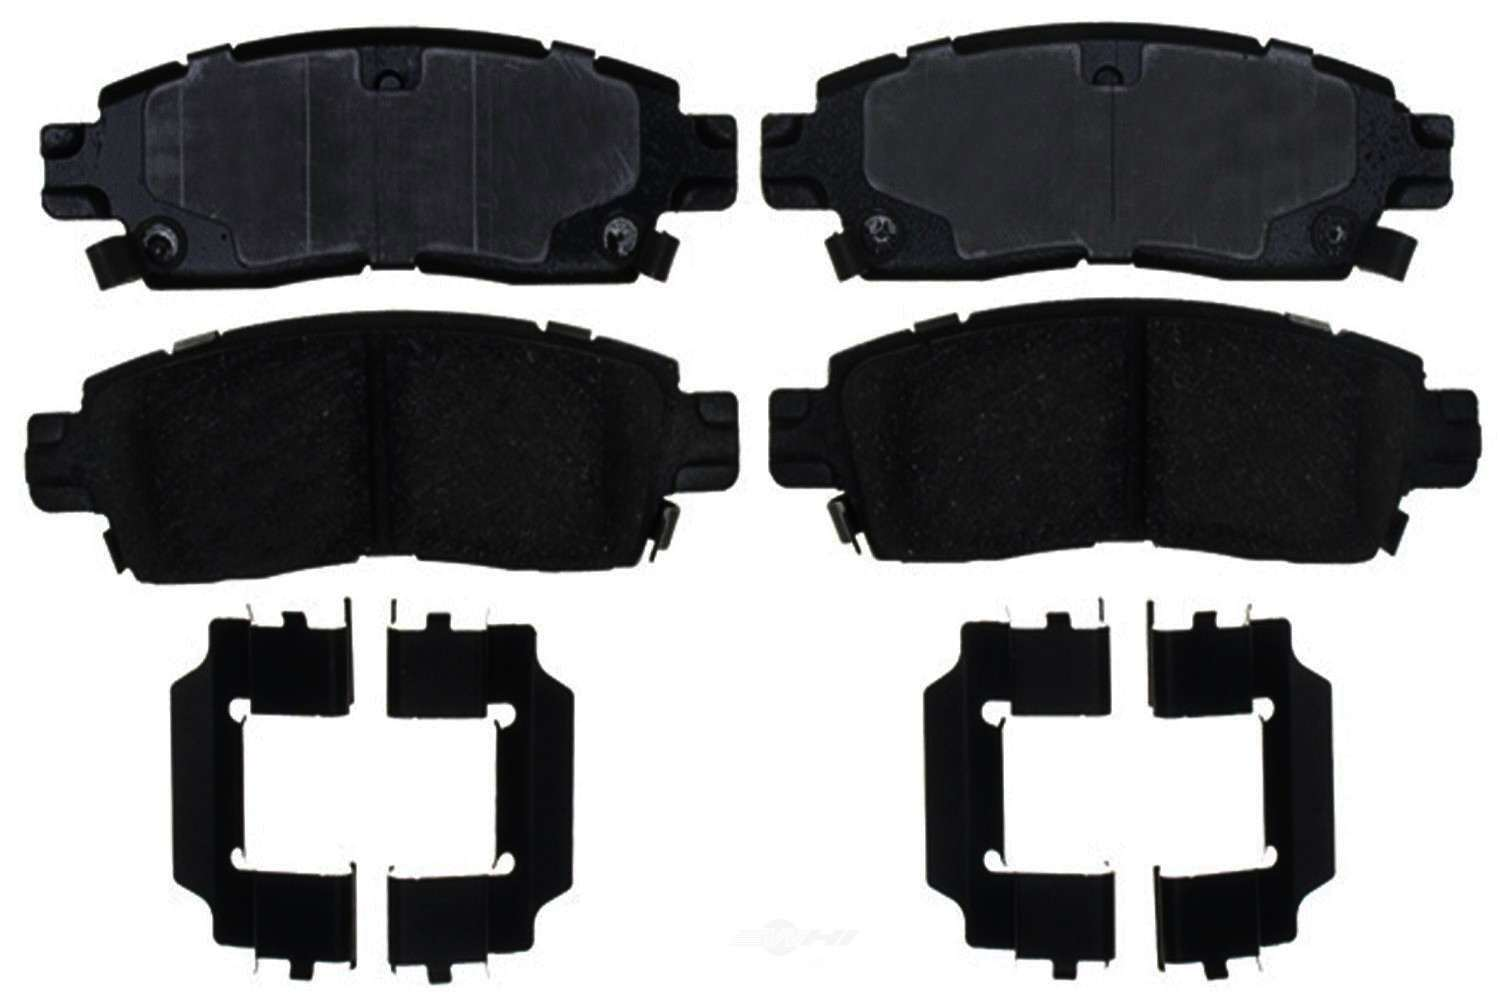 ACDELCO GOLD/PROFESSIONAL BRAKES - Ceramic Disc Brake Pad (Rear) - ADU 17D883CH